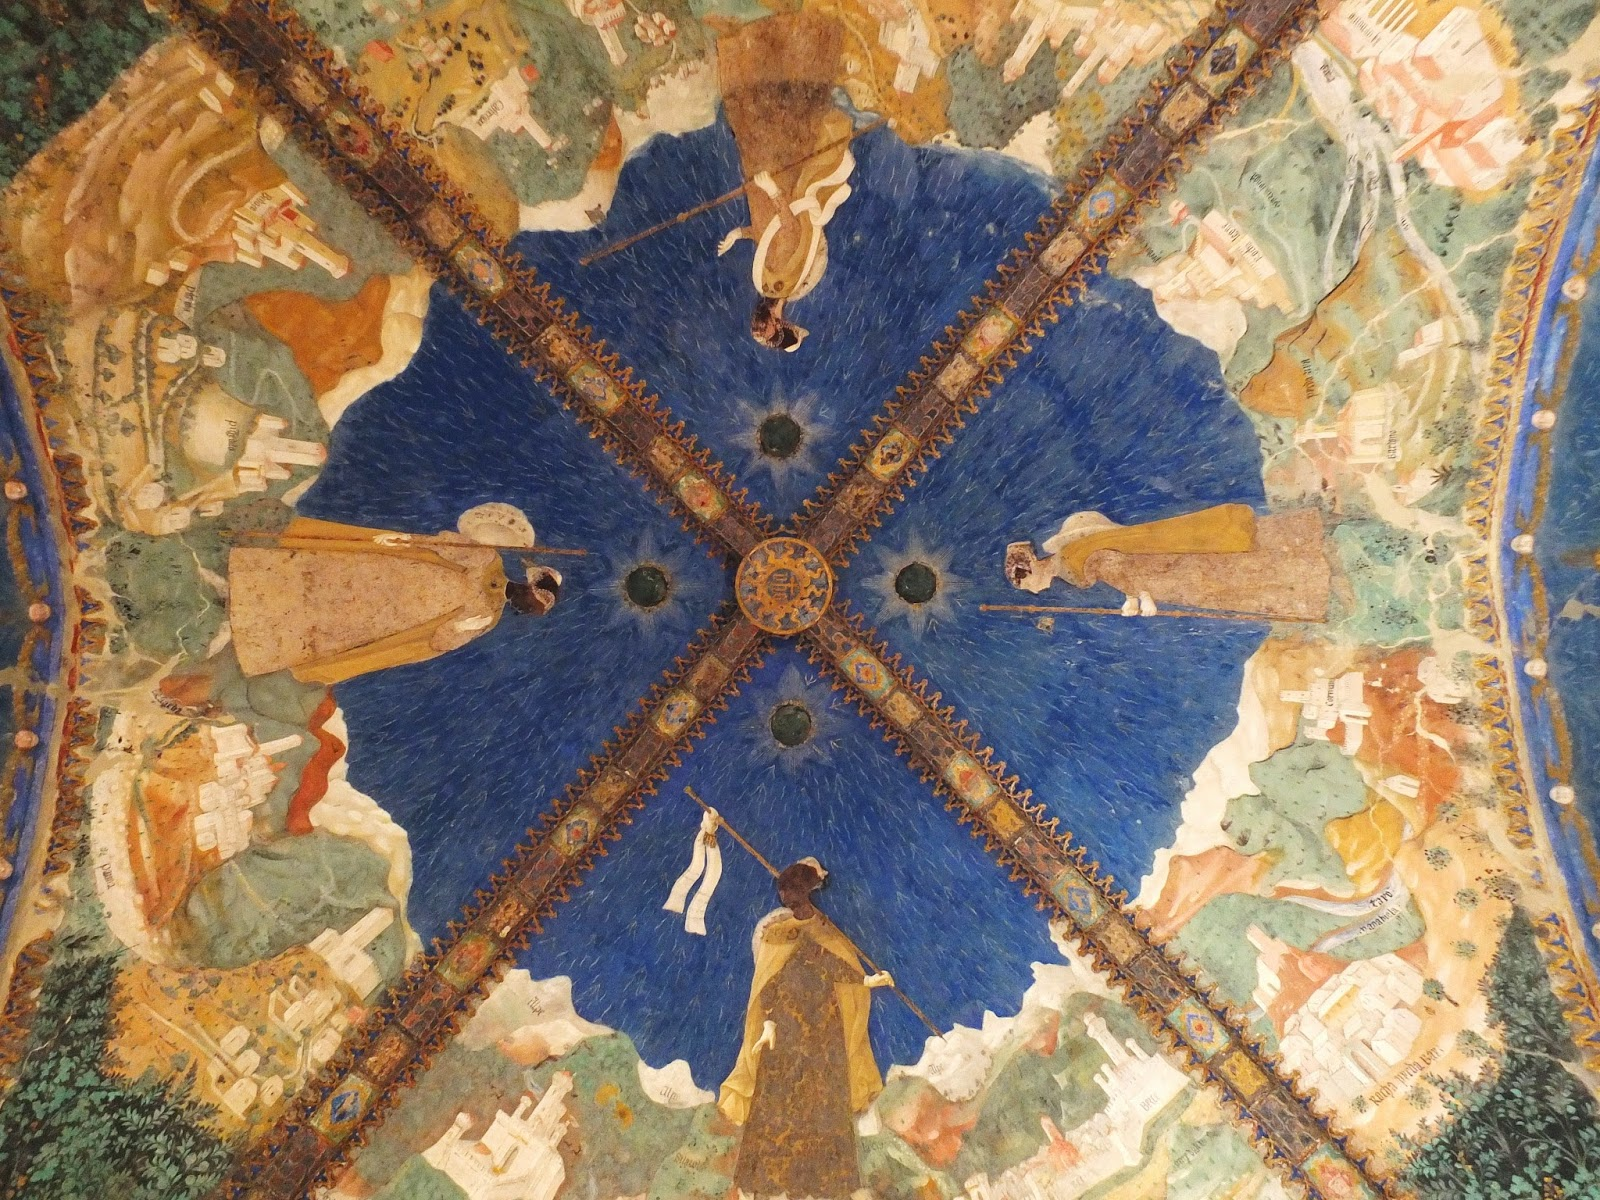 Ceiling of the Golden Room, Torrechiara Castle.